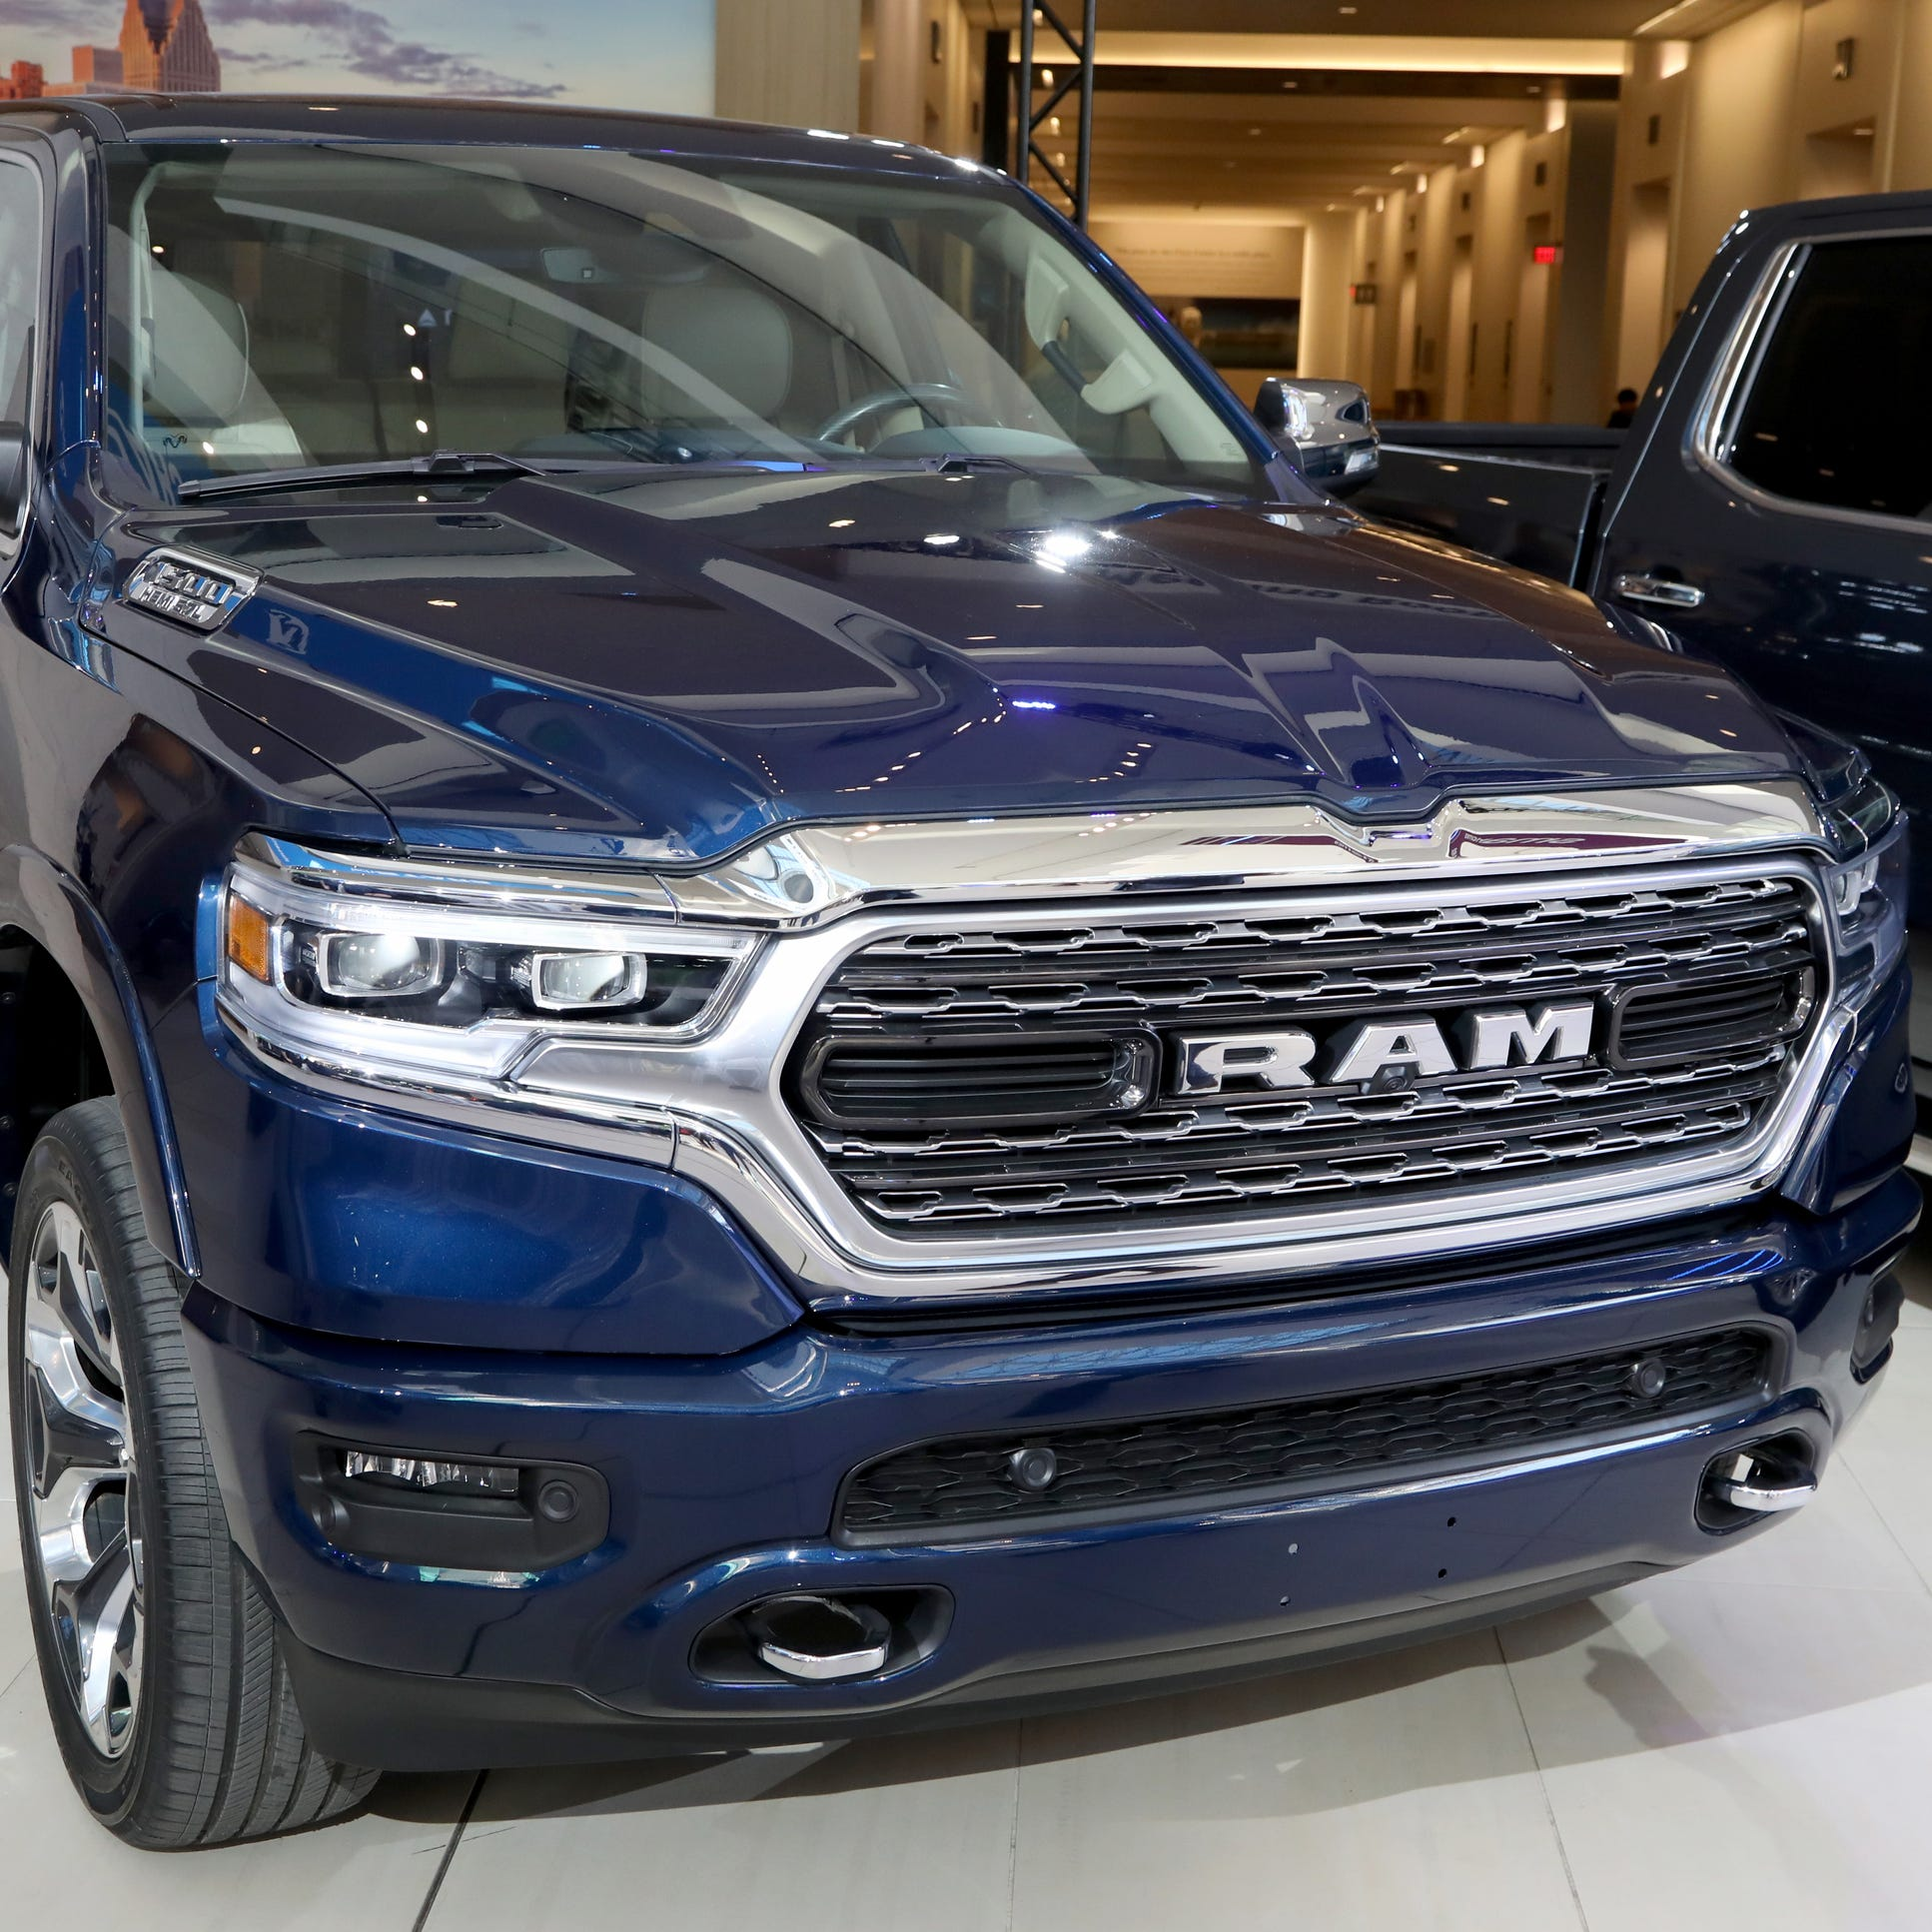 Ram drives Fiat Chrysler's first-quarter profits, which drop 47% from a year ago